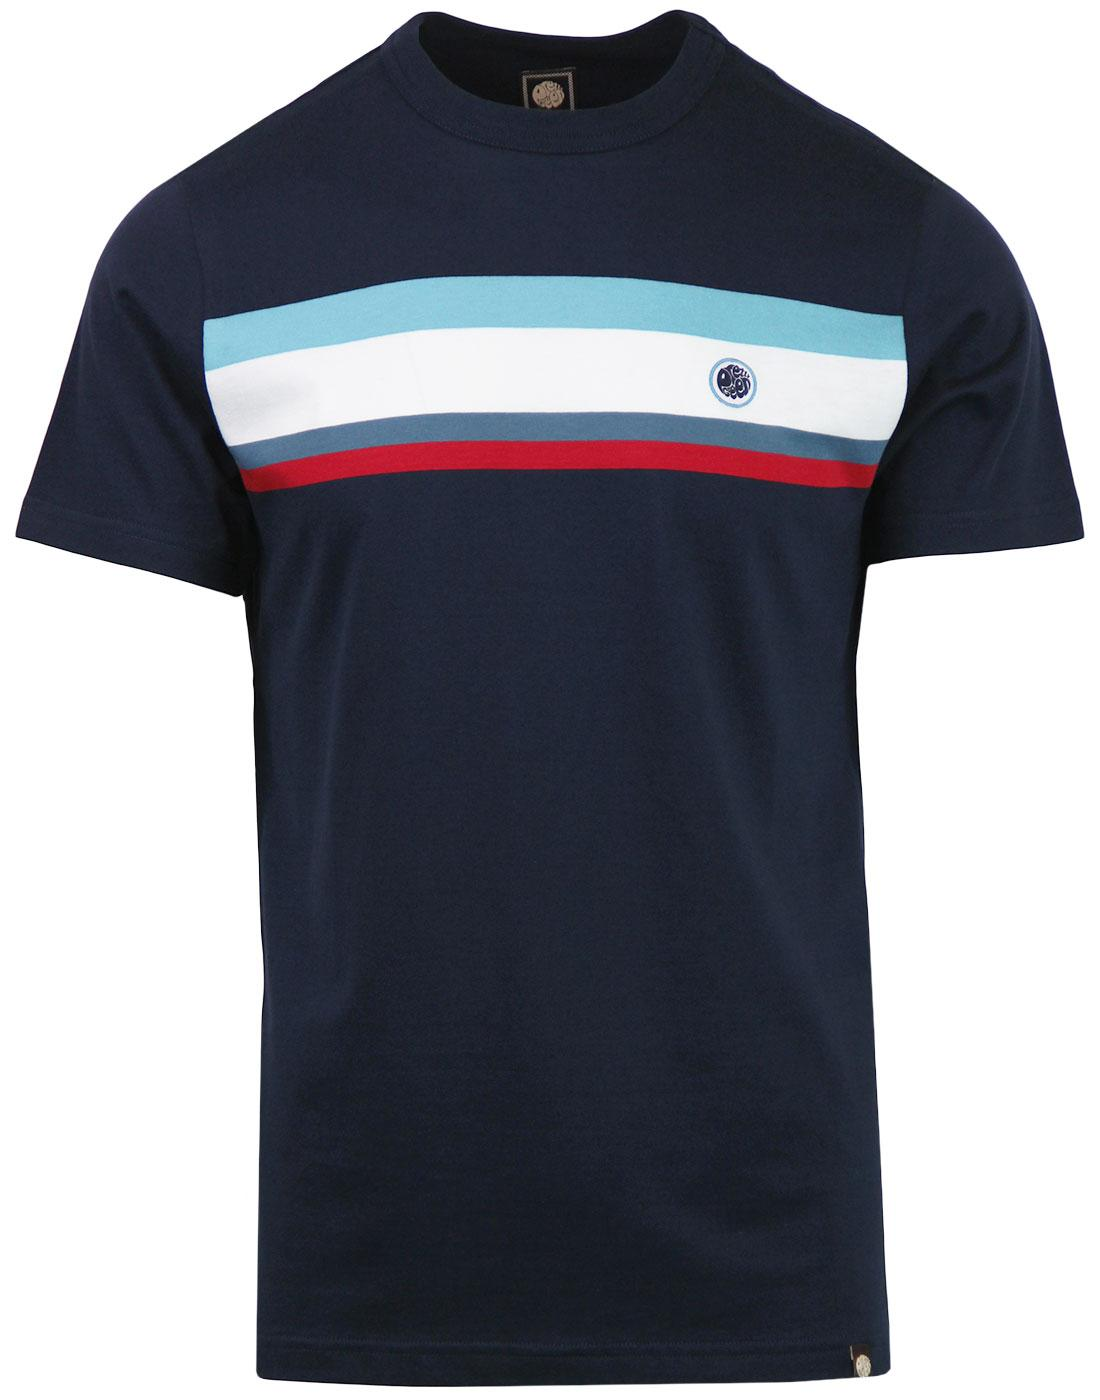 Brydon PRETTY GREEN Retro 90s Mod Panel Tee NAVY